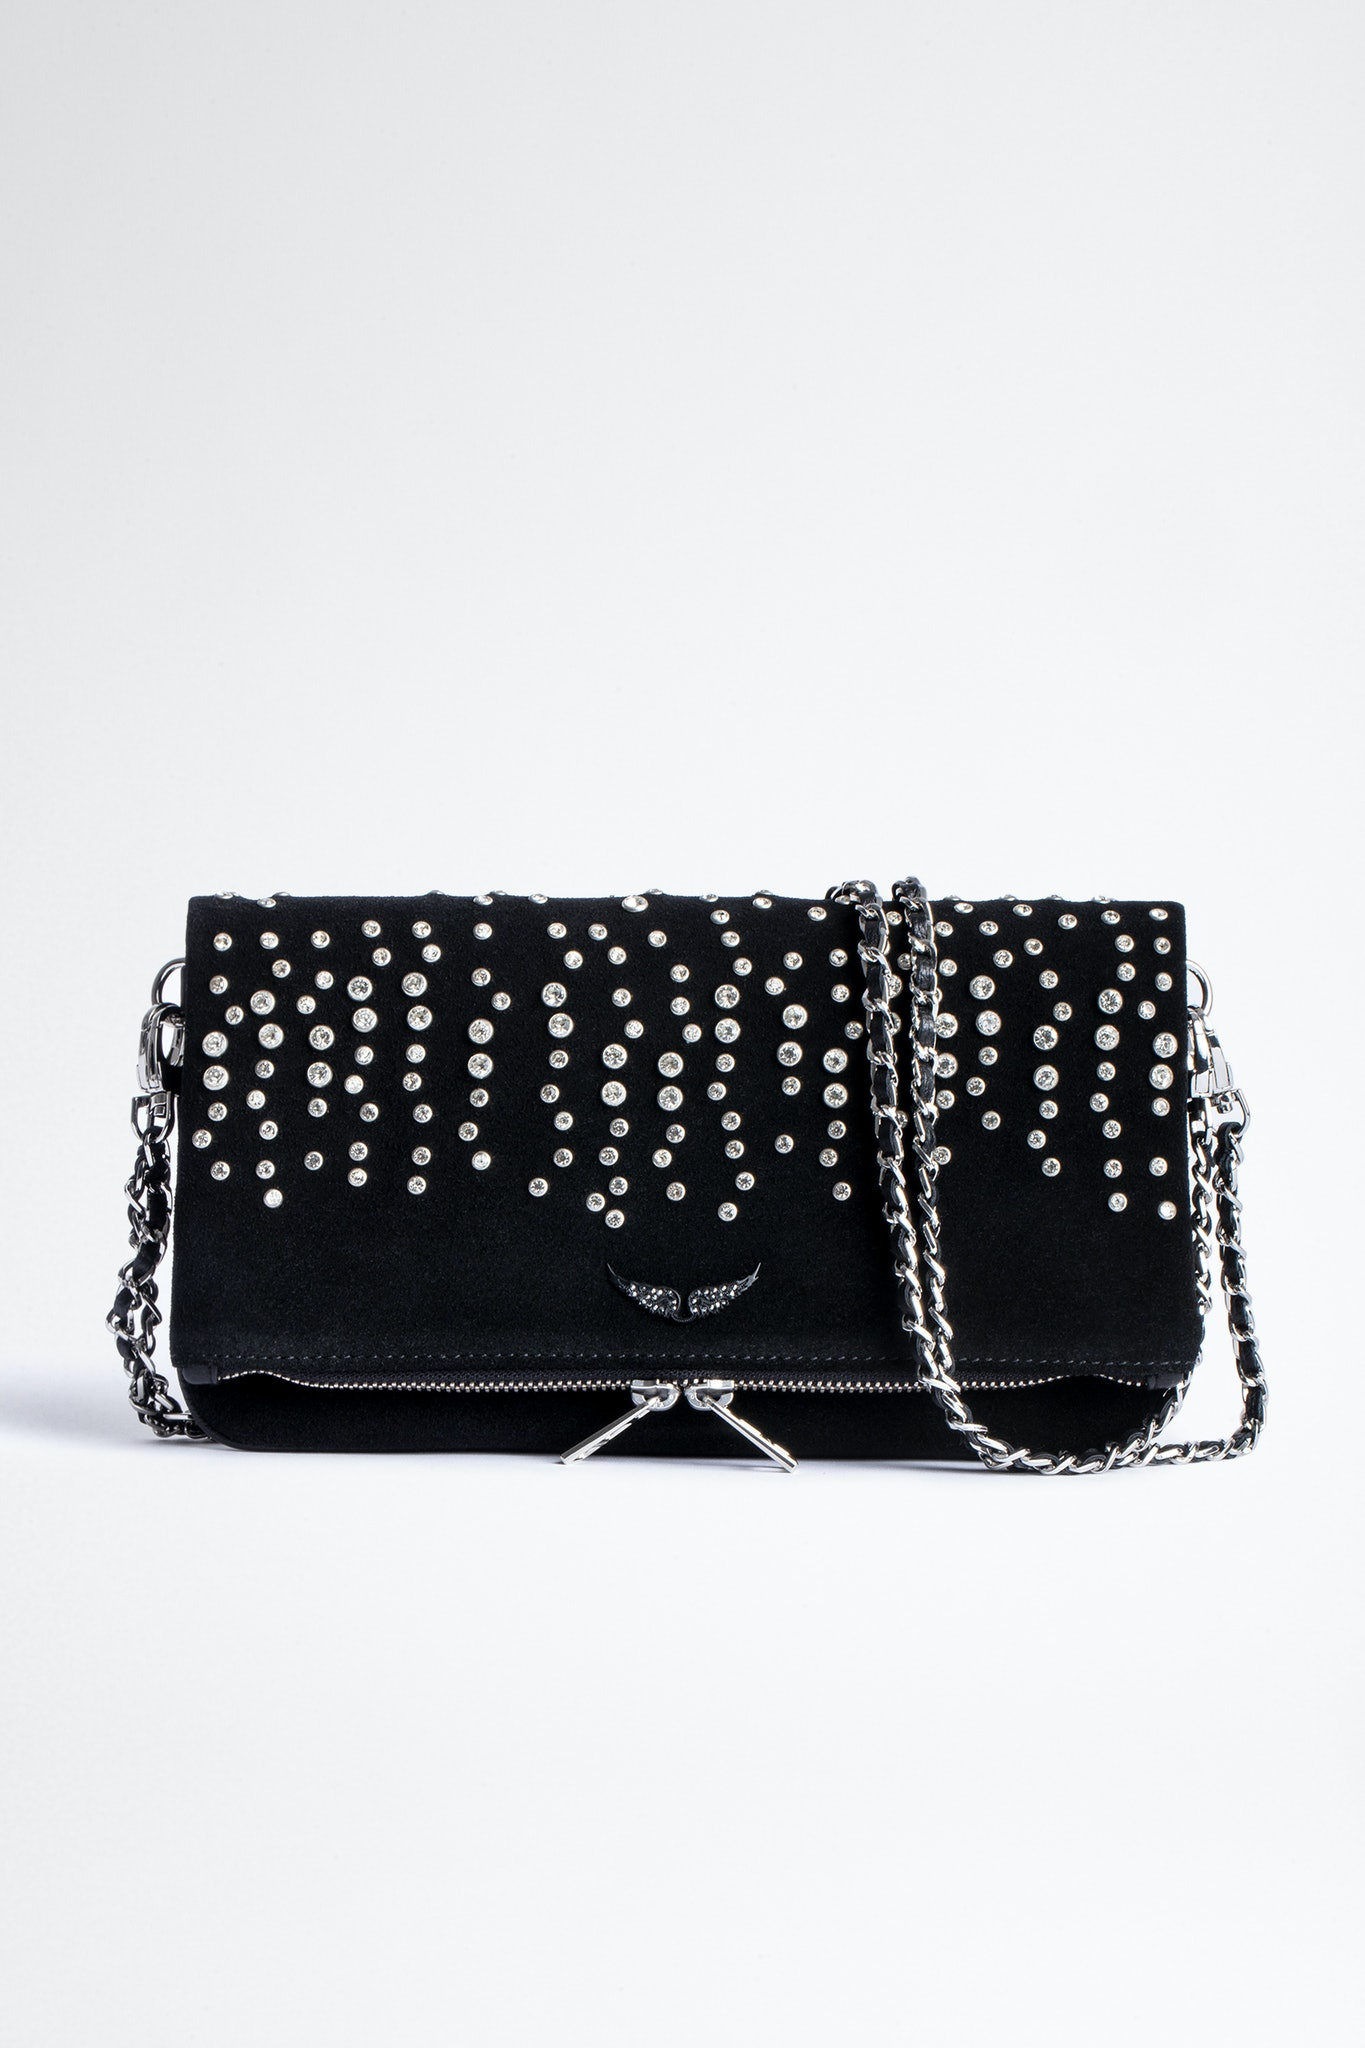 Rock Suede Strass Clutch